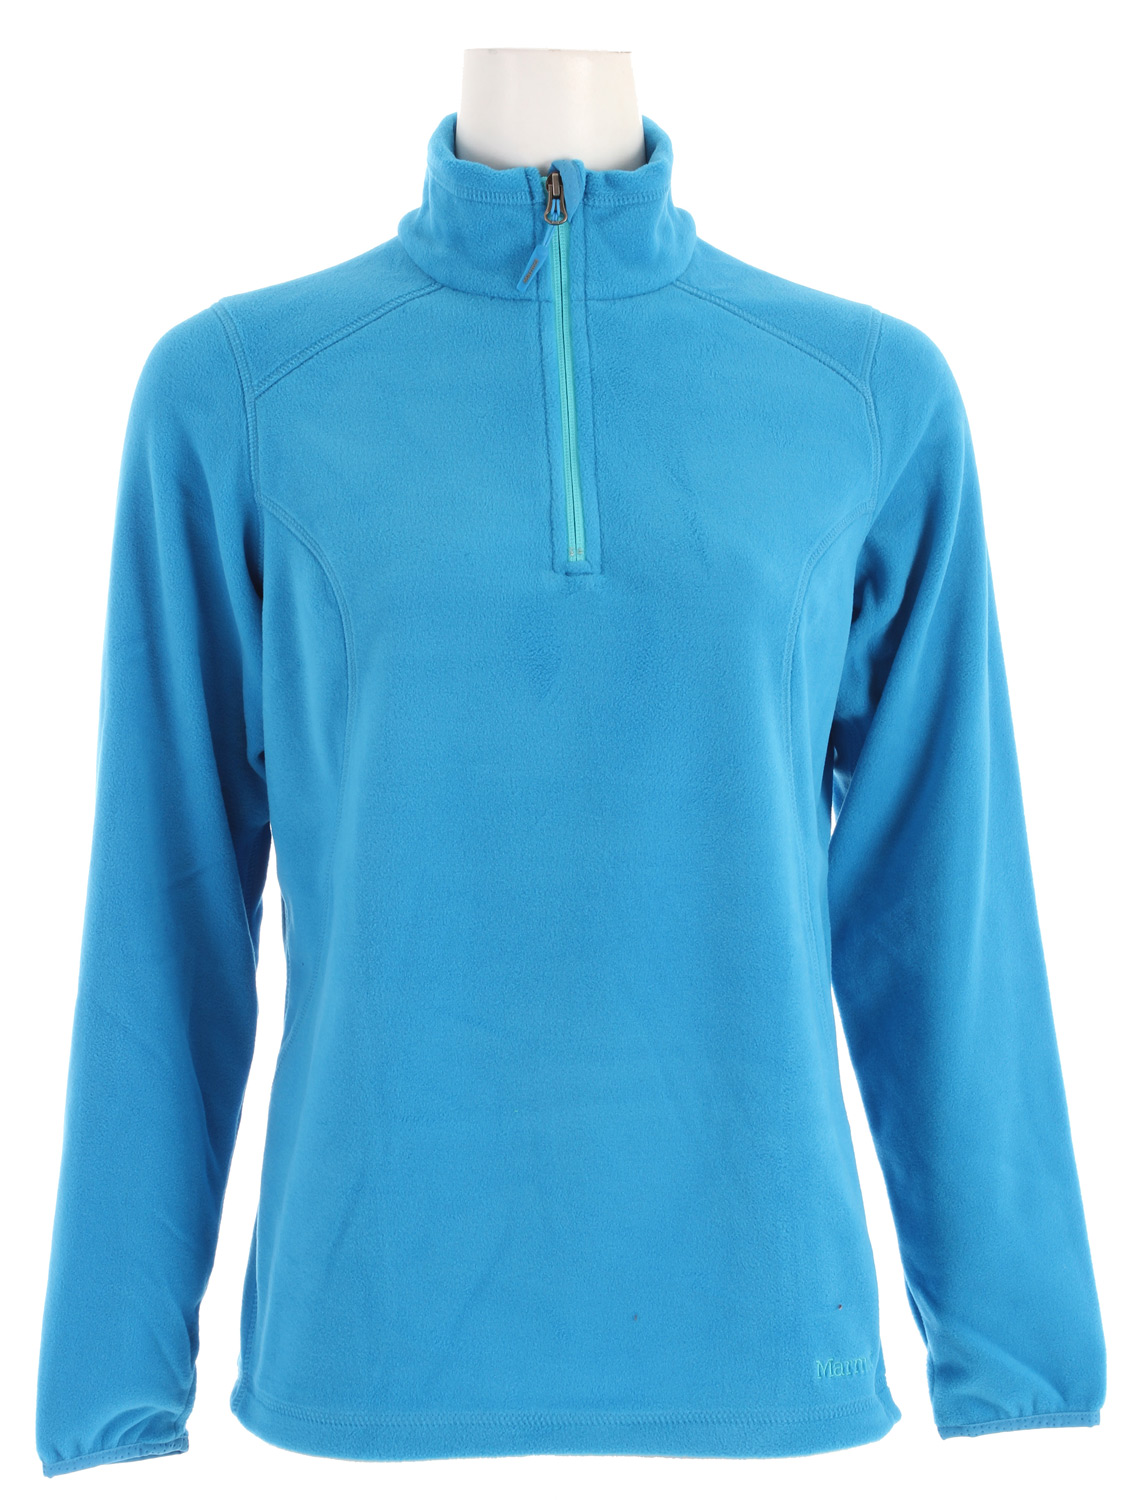 "Key Features of the Marmot Flashpoint Half Zip Fleece: Weight 0lb 7.6oz (215g) Materials PolartecClassic 100 100% Polyester Micro Fleece 4.6 oz/yd Polartec Classic 100 Micro Flat Lock Construction 8 1/2"" Center Front Zip Lycra Bound Cuffs with Integrated Thumb Holes 26"" Center Back Length for Size Medium - $55.95"